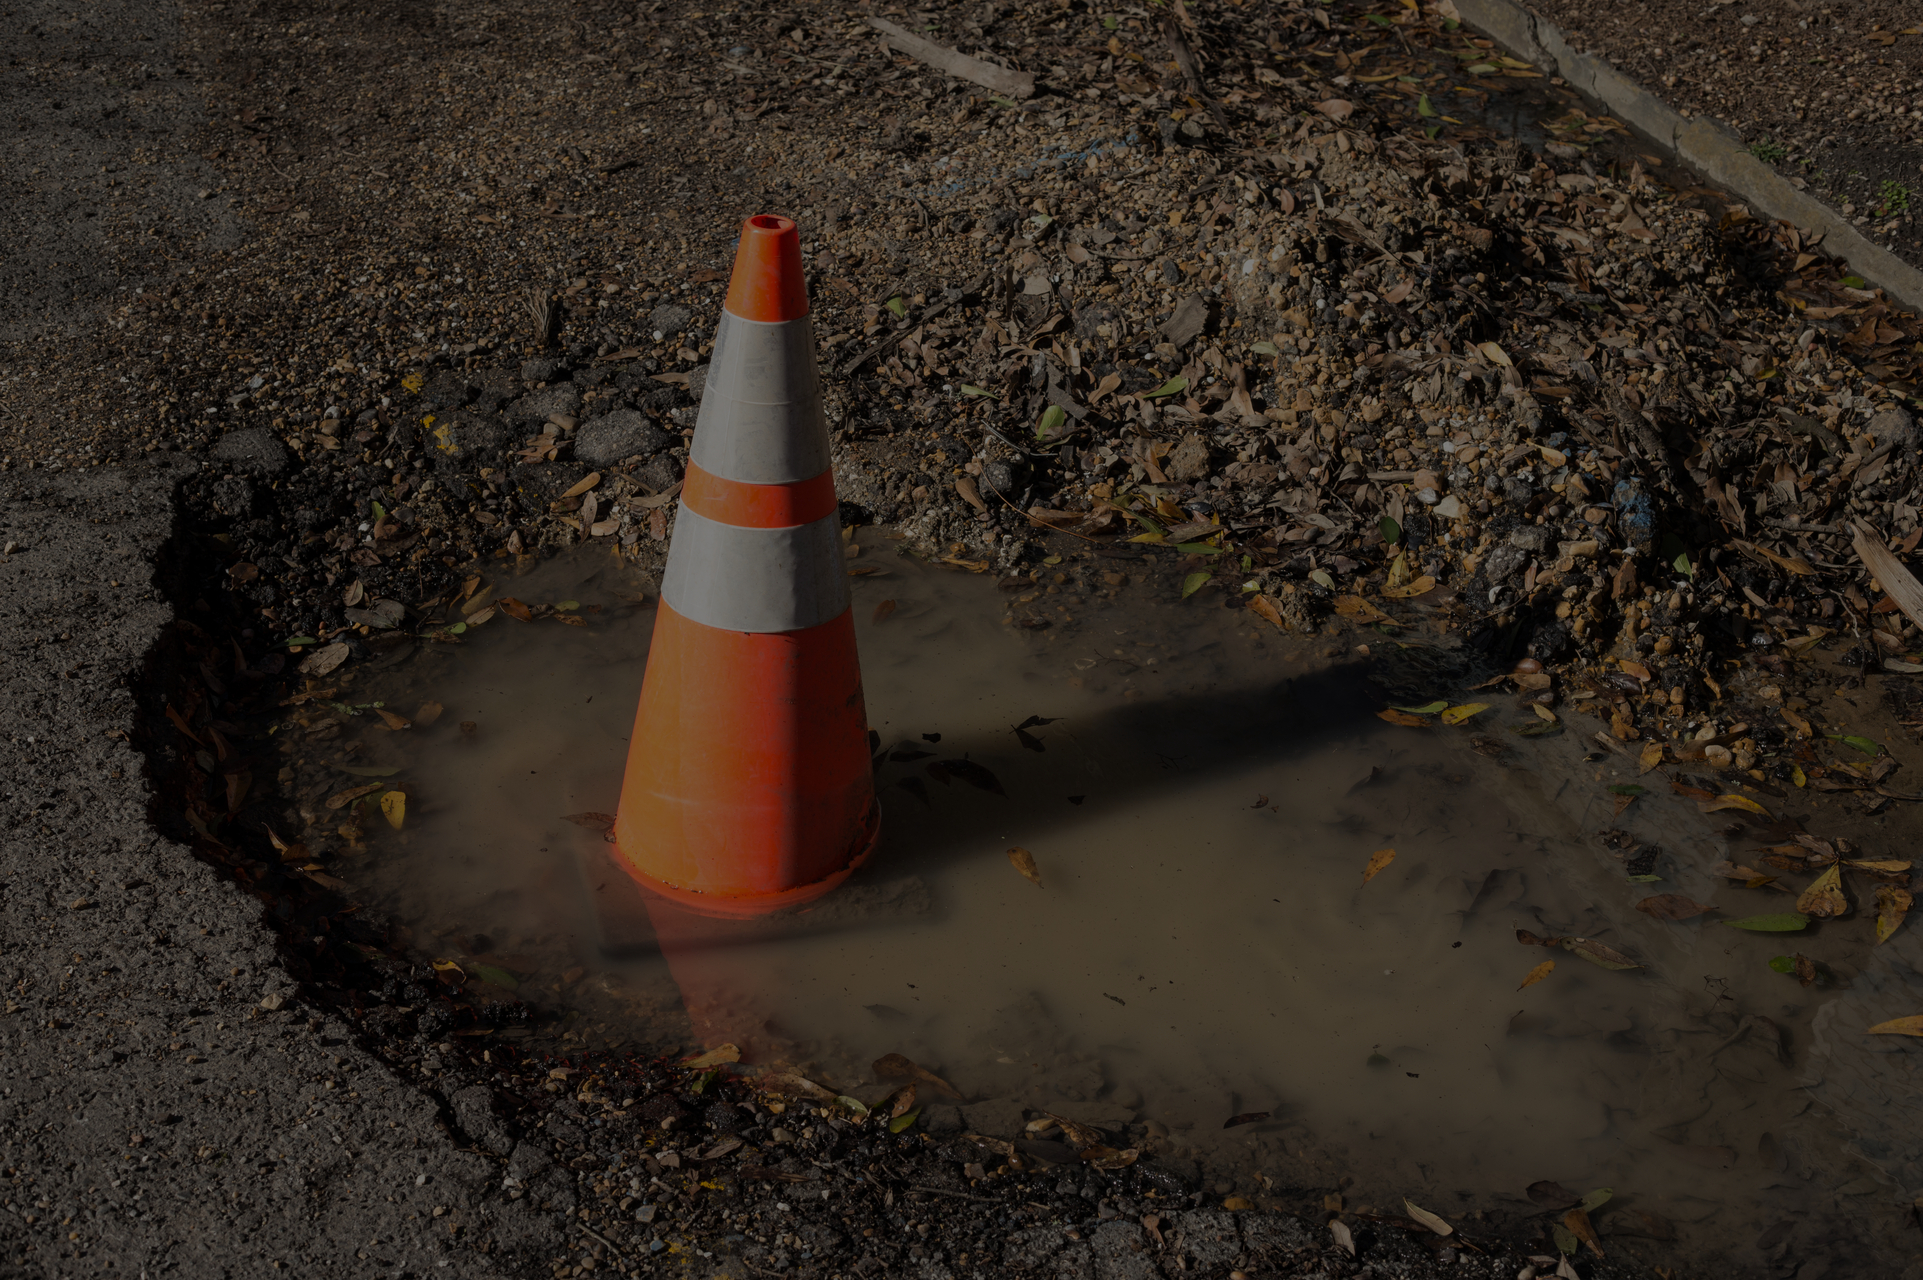 Potholes - Are Steel Road Plates the Right Solution?